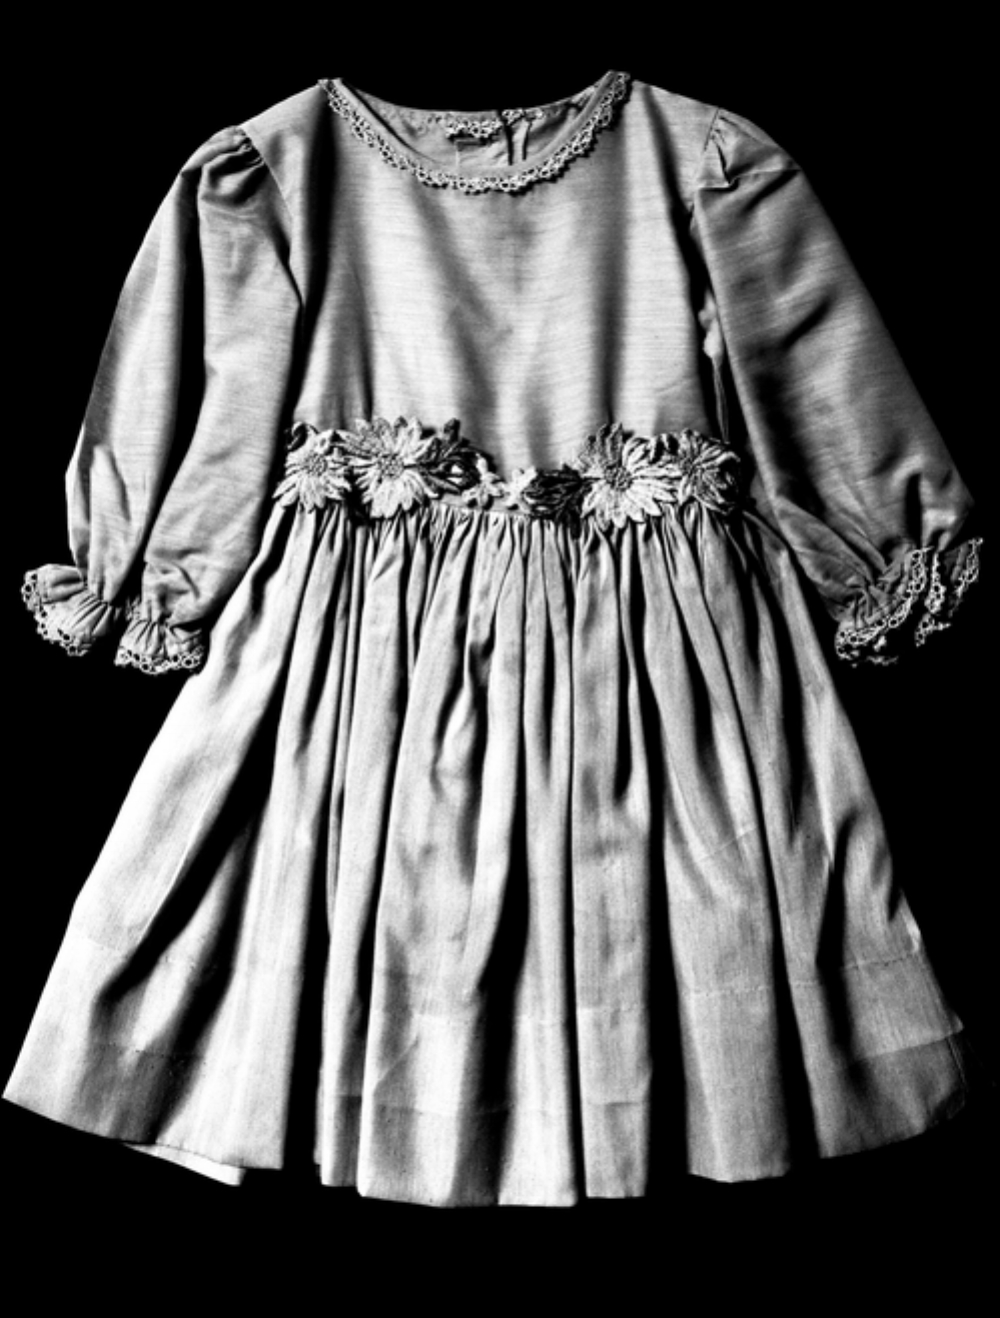 Denise McNair's Dress ( source )   On Sept. 15, 1963, a little over two weeks after the March on Washington four little girls—Addie Mae Collins, Denise McNair, Cynthia Wesley and Carole Robertson—were killed in an explosion at the 16th Street Baptist Church in Birmingham, Al. The explosives were placed and discharged by members of the Ku Klux Klan.